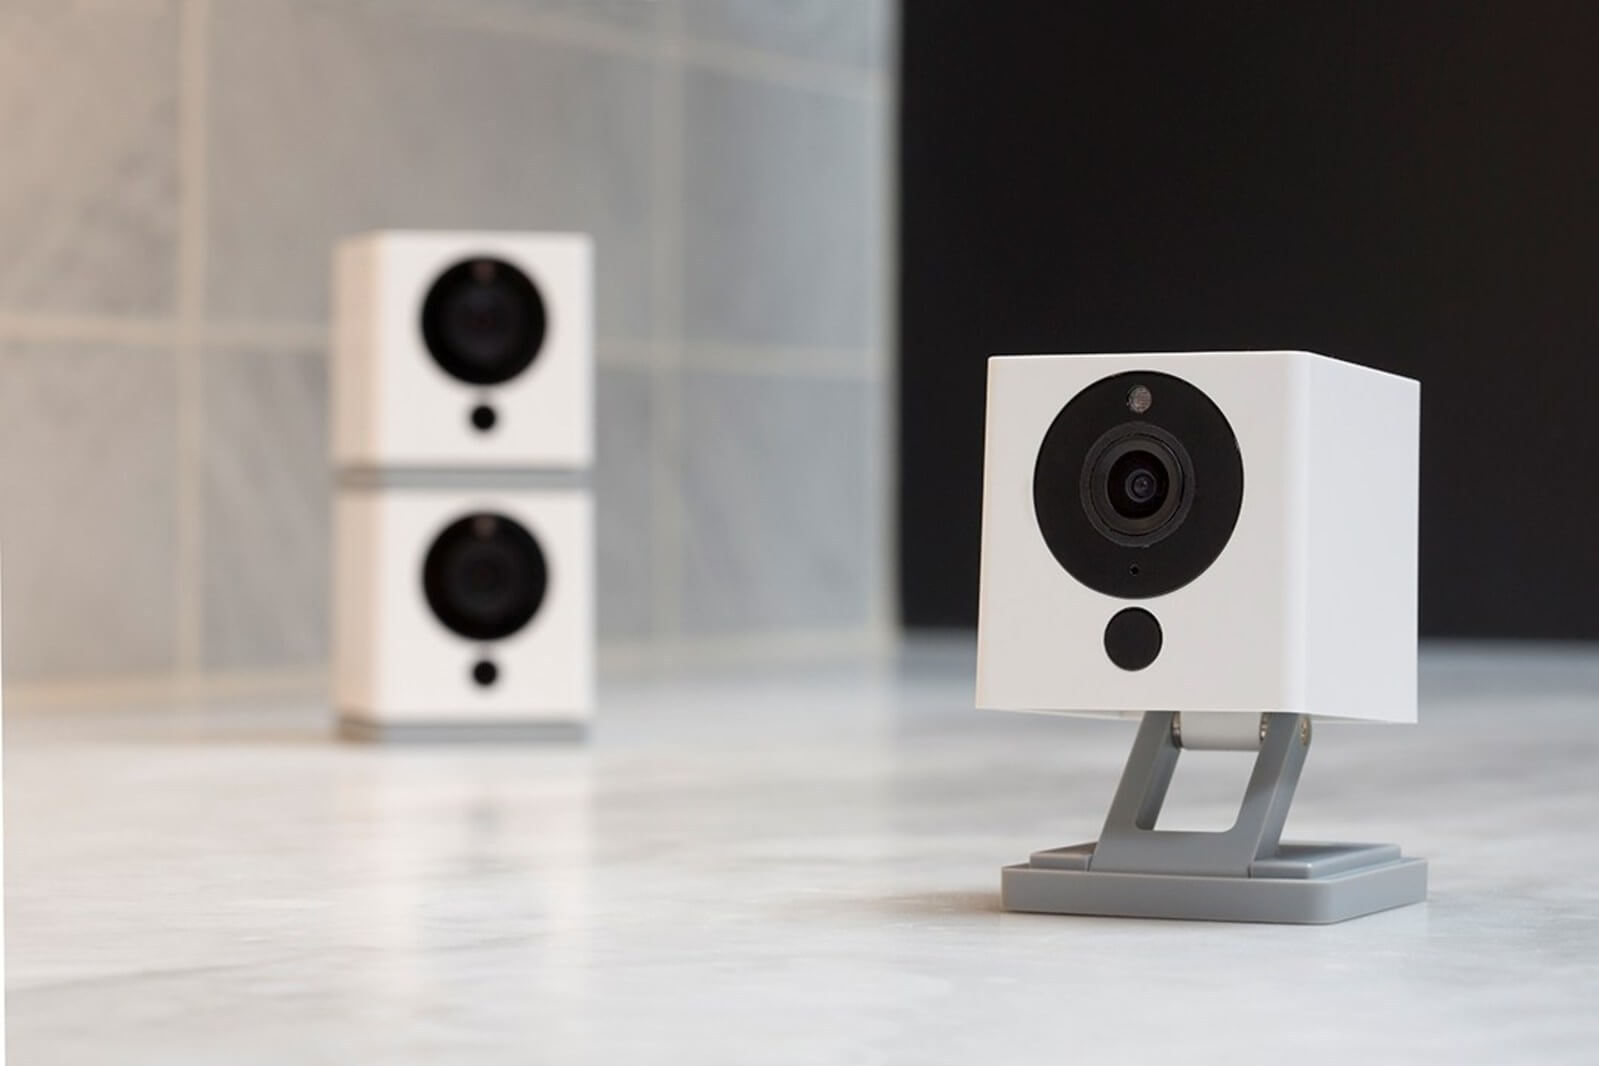 The WyzeCam 2 is better and smarter than its predecessor, and still only $20